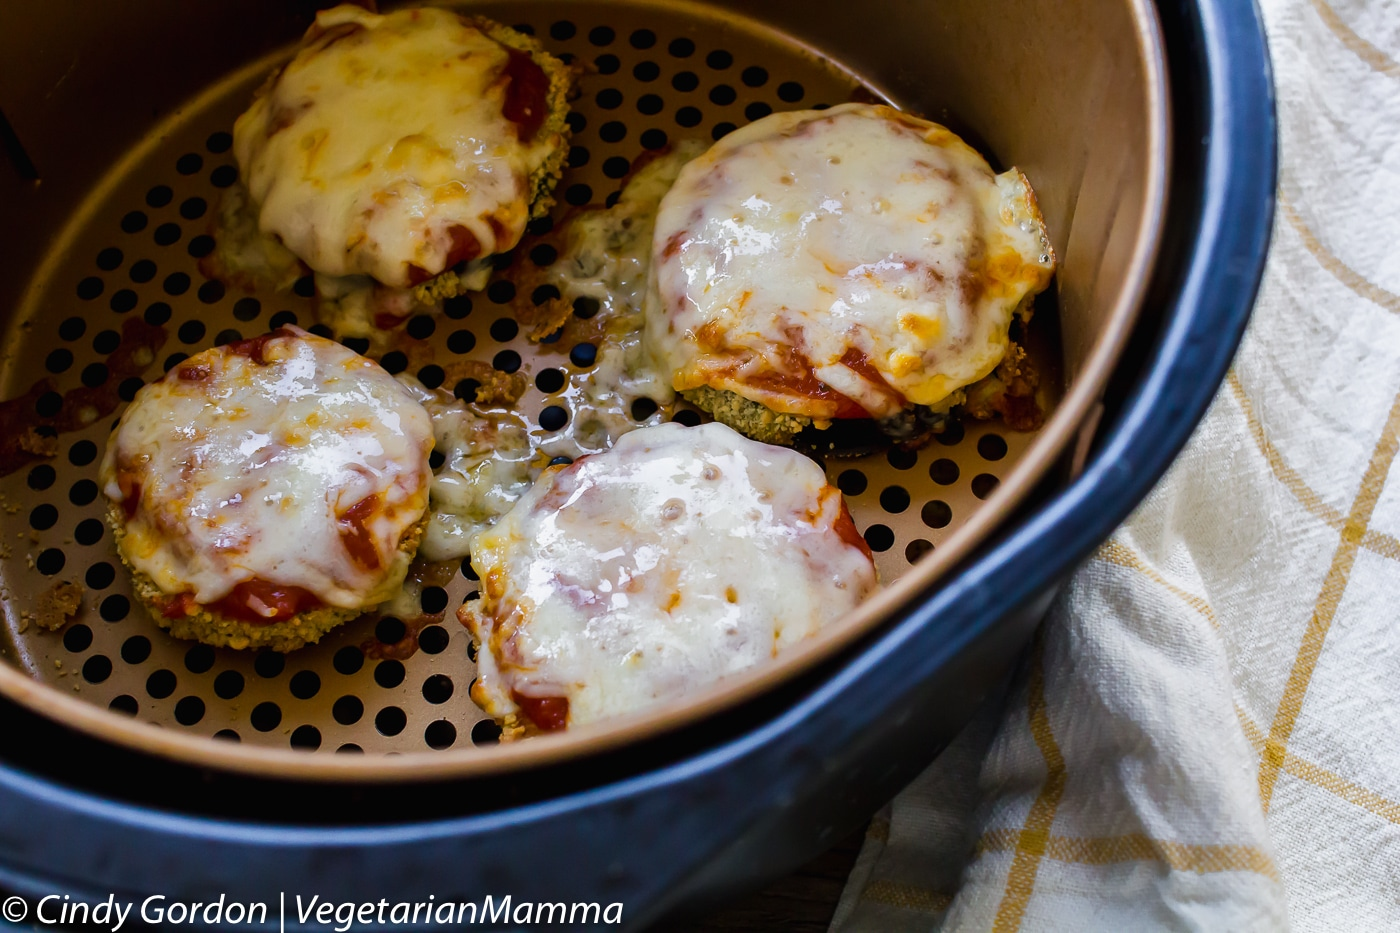 Air Fryer Gluten Free Eggplant Parmesan topped with cheese in the air fryer basket.